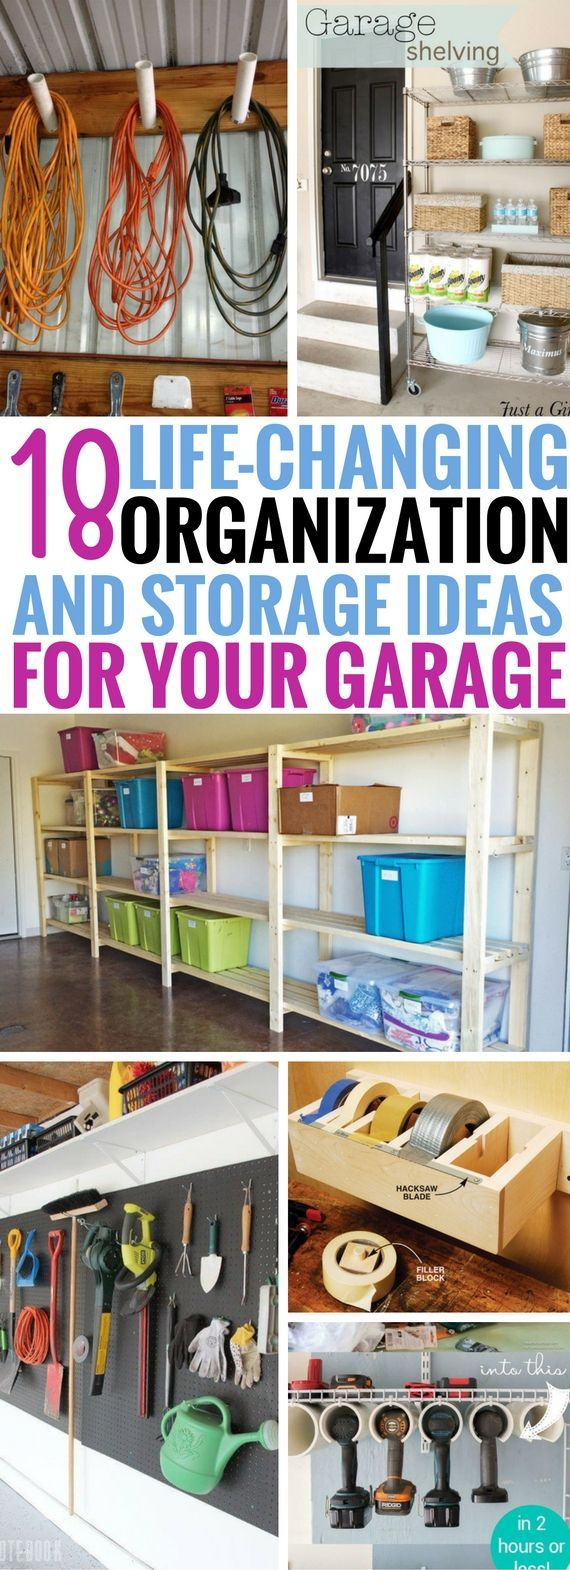 18 Life Changing Garage Organization And Storage Ideas